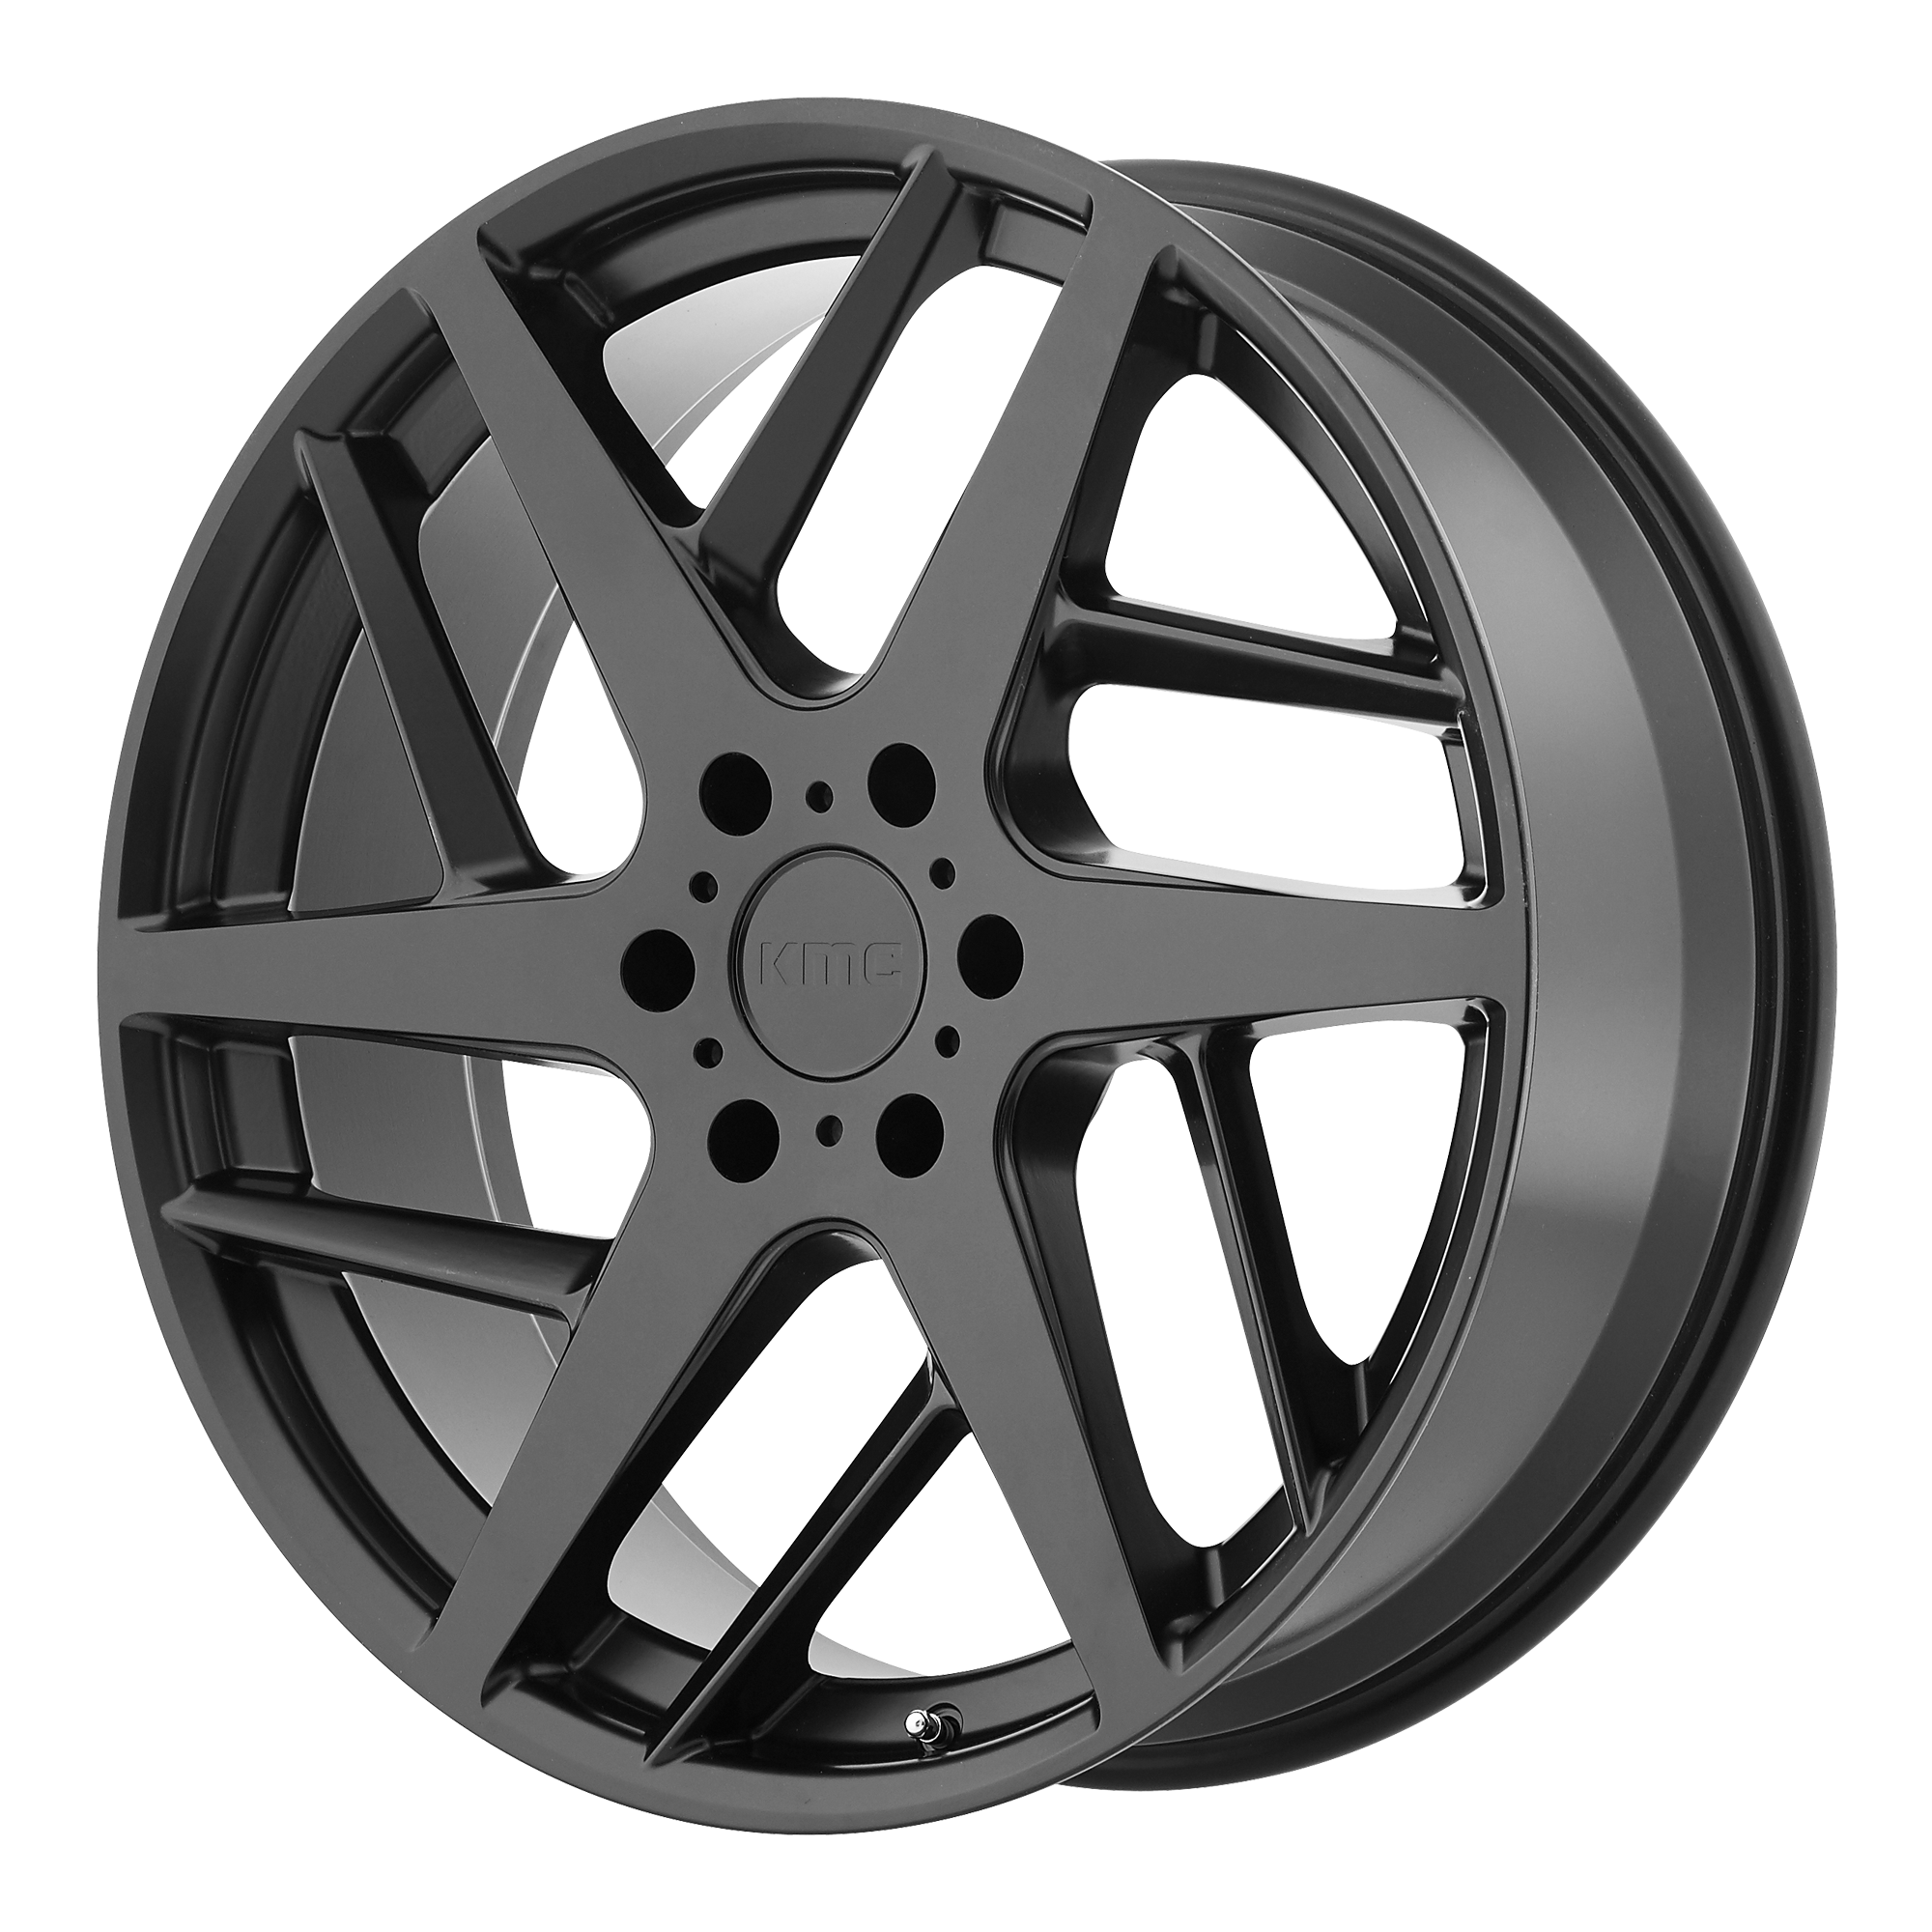 KMC Wheels TWO Face Satin Black